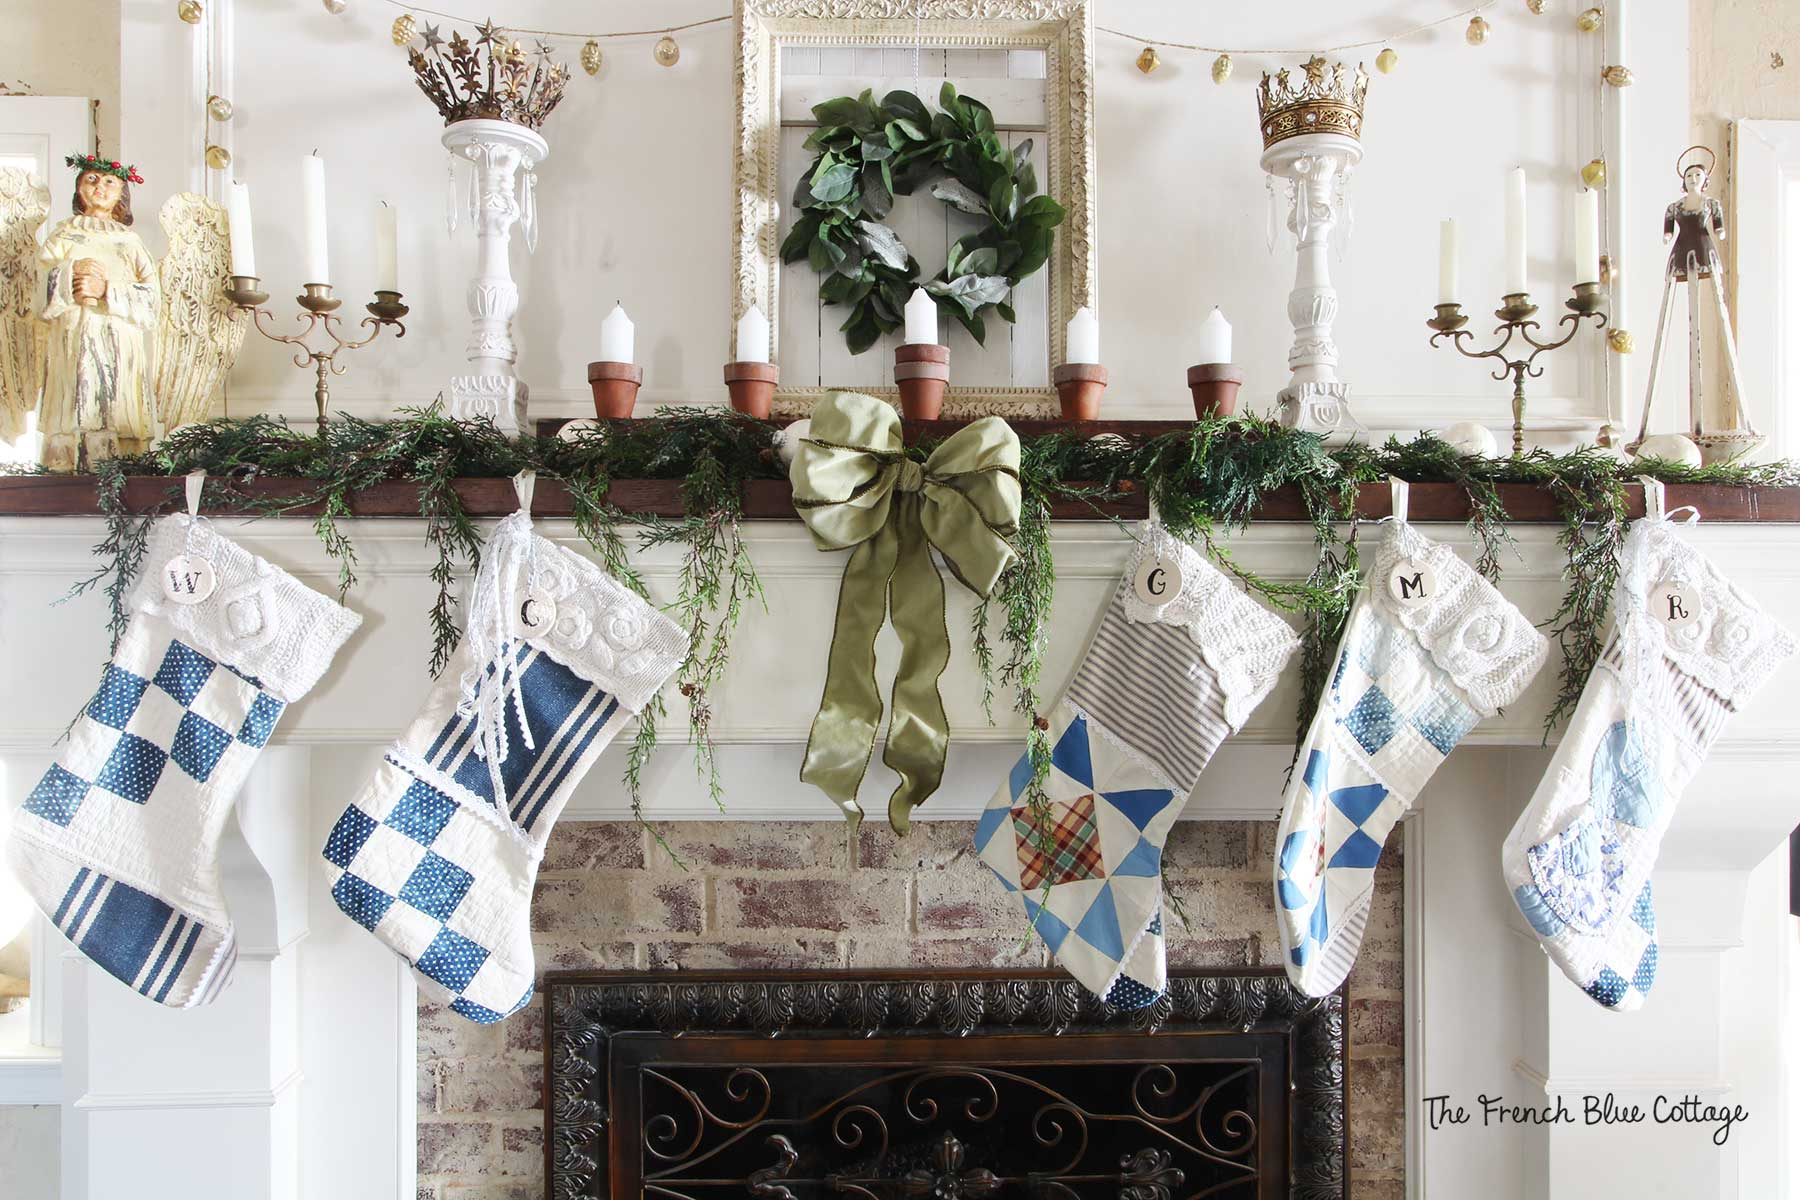 Patchwork stockings on a French country Christmas mantel.